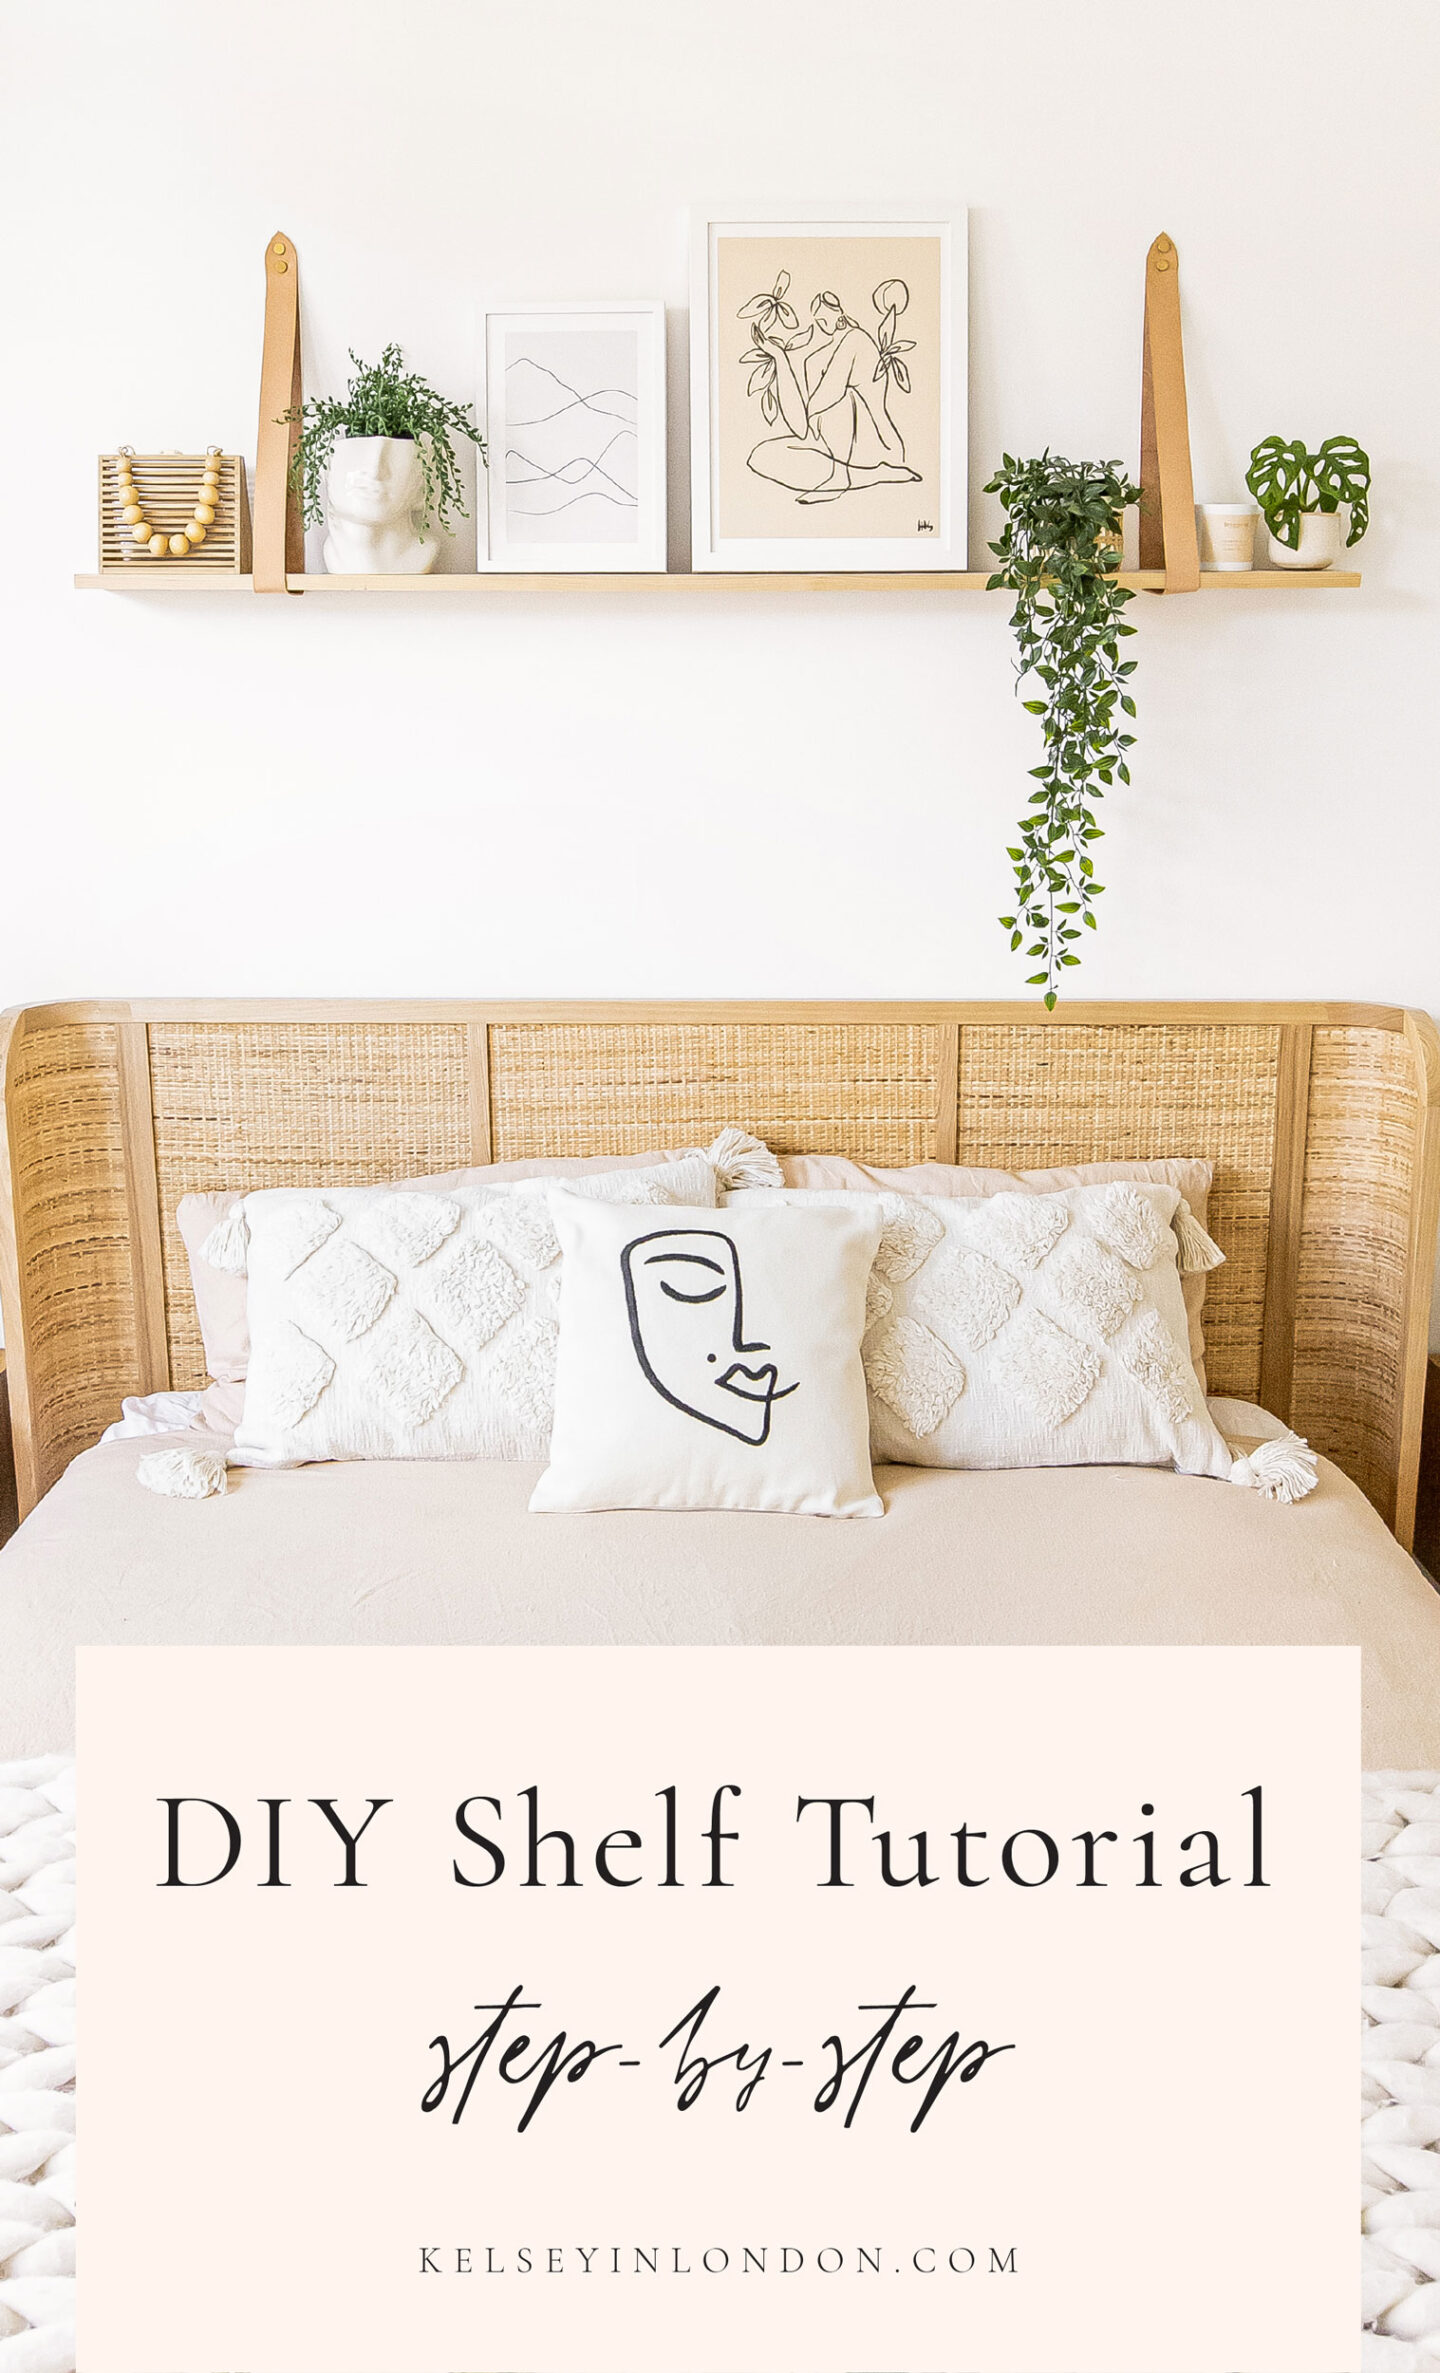 DIY-Shelf-Tutorial-Floating-Wooden-Shelf-with-Leather-Straps---Kelseyinlondon---homewithkelsey---Kelsey-Heinrichs